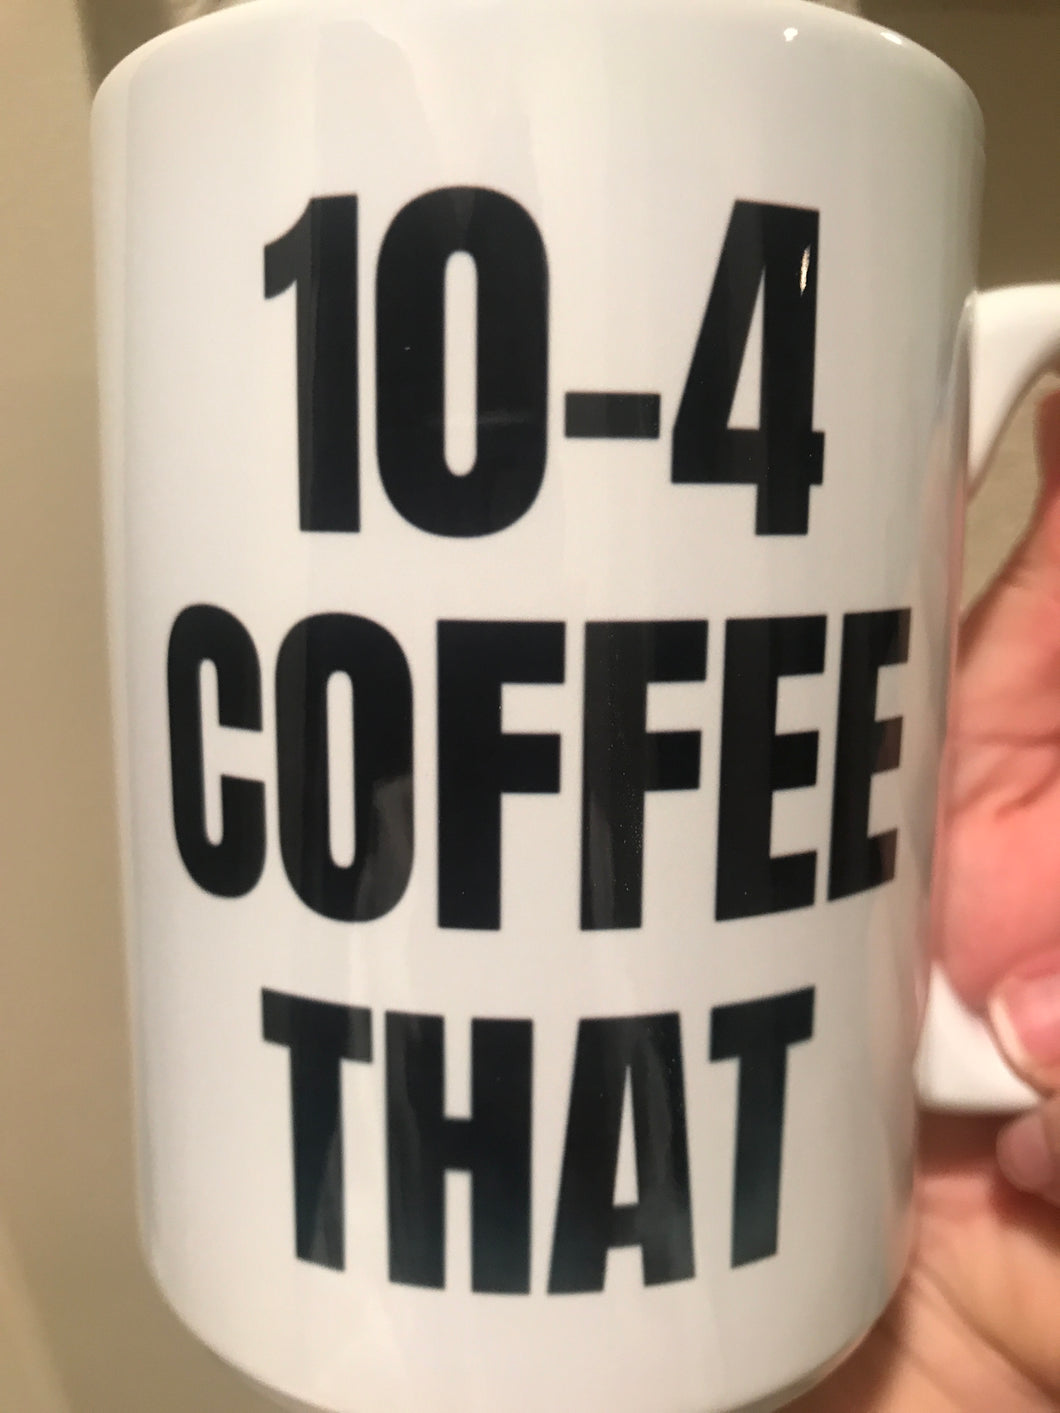 10-4 Coffee That Police Mug **Discounted due to blurry letters**